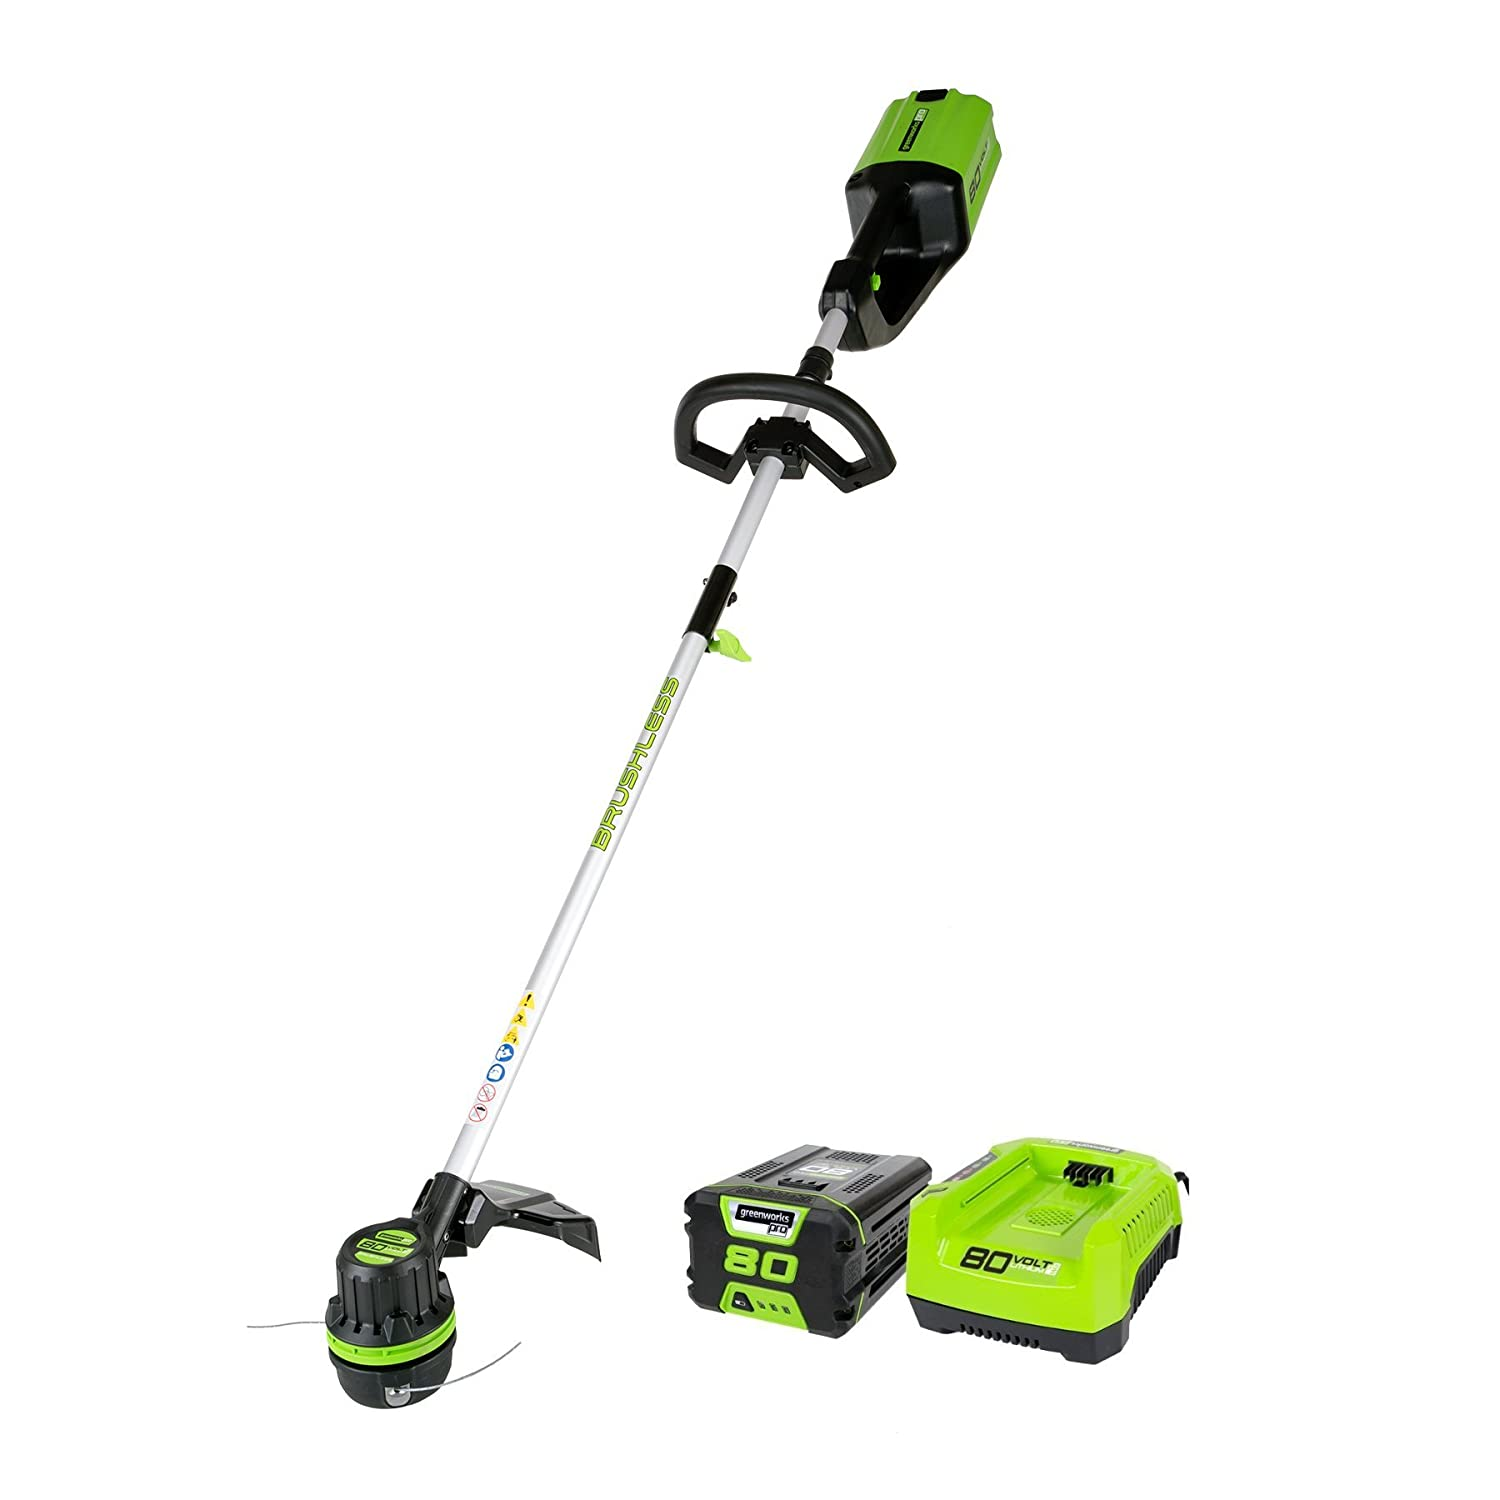 GreenWorks Pro ST80L210 80V 16-Inch Cordless String Trimmer